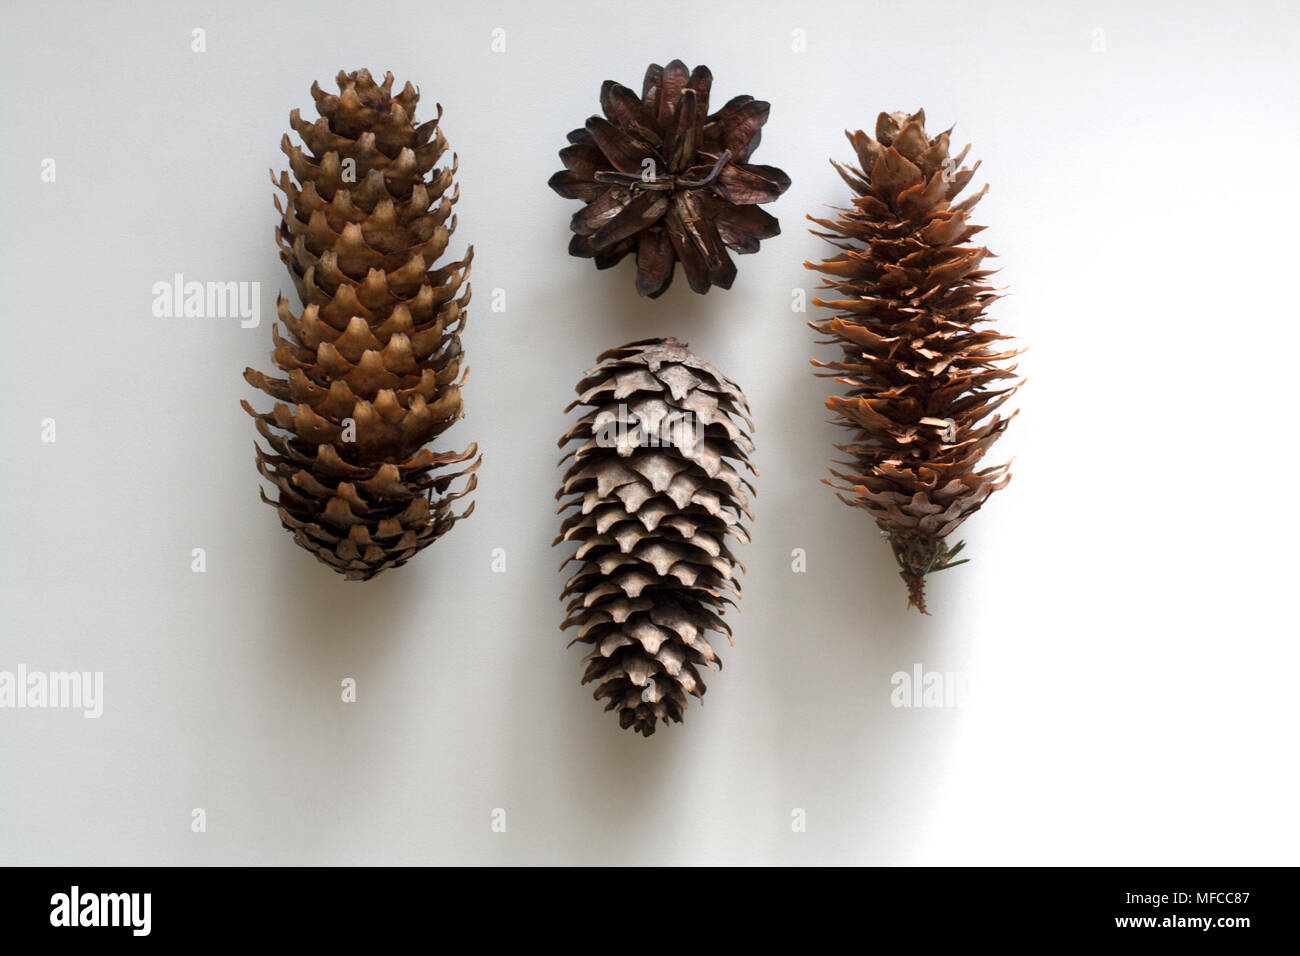 Conifer cones set isolated on white background from a high angle view - Stock Image